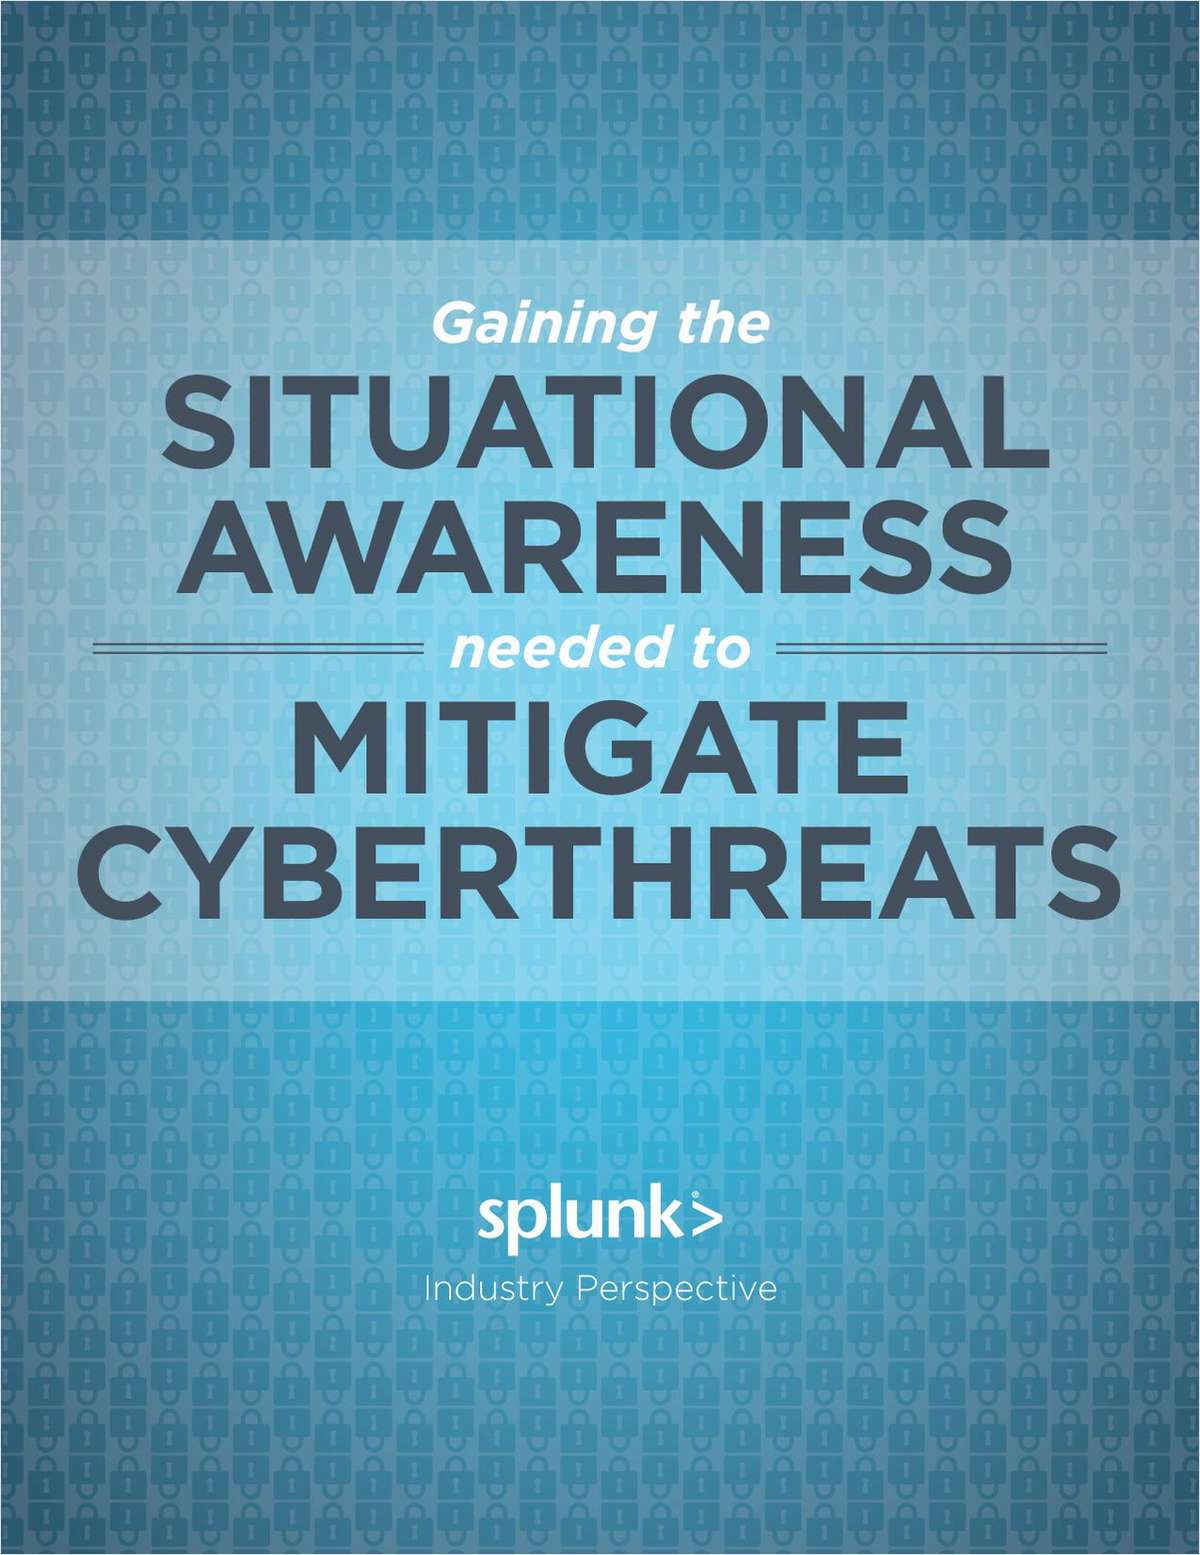 Gain Situational Awareness Needed To Mitigate Cyberthreats